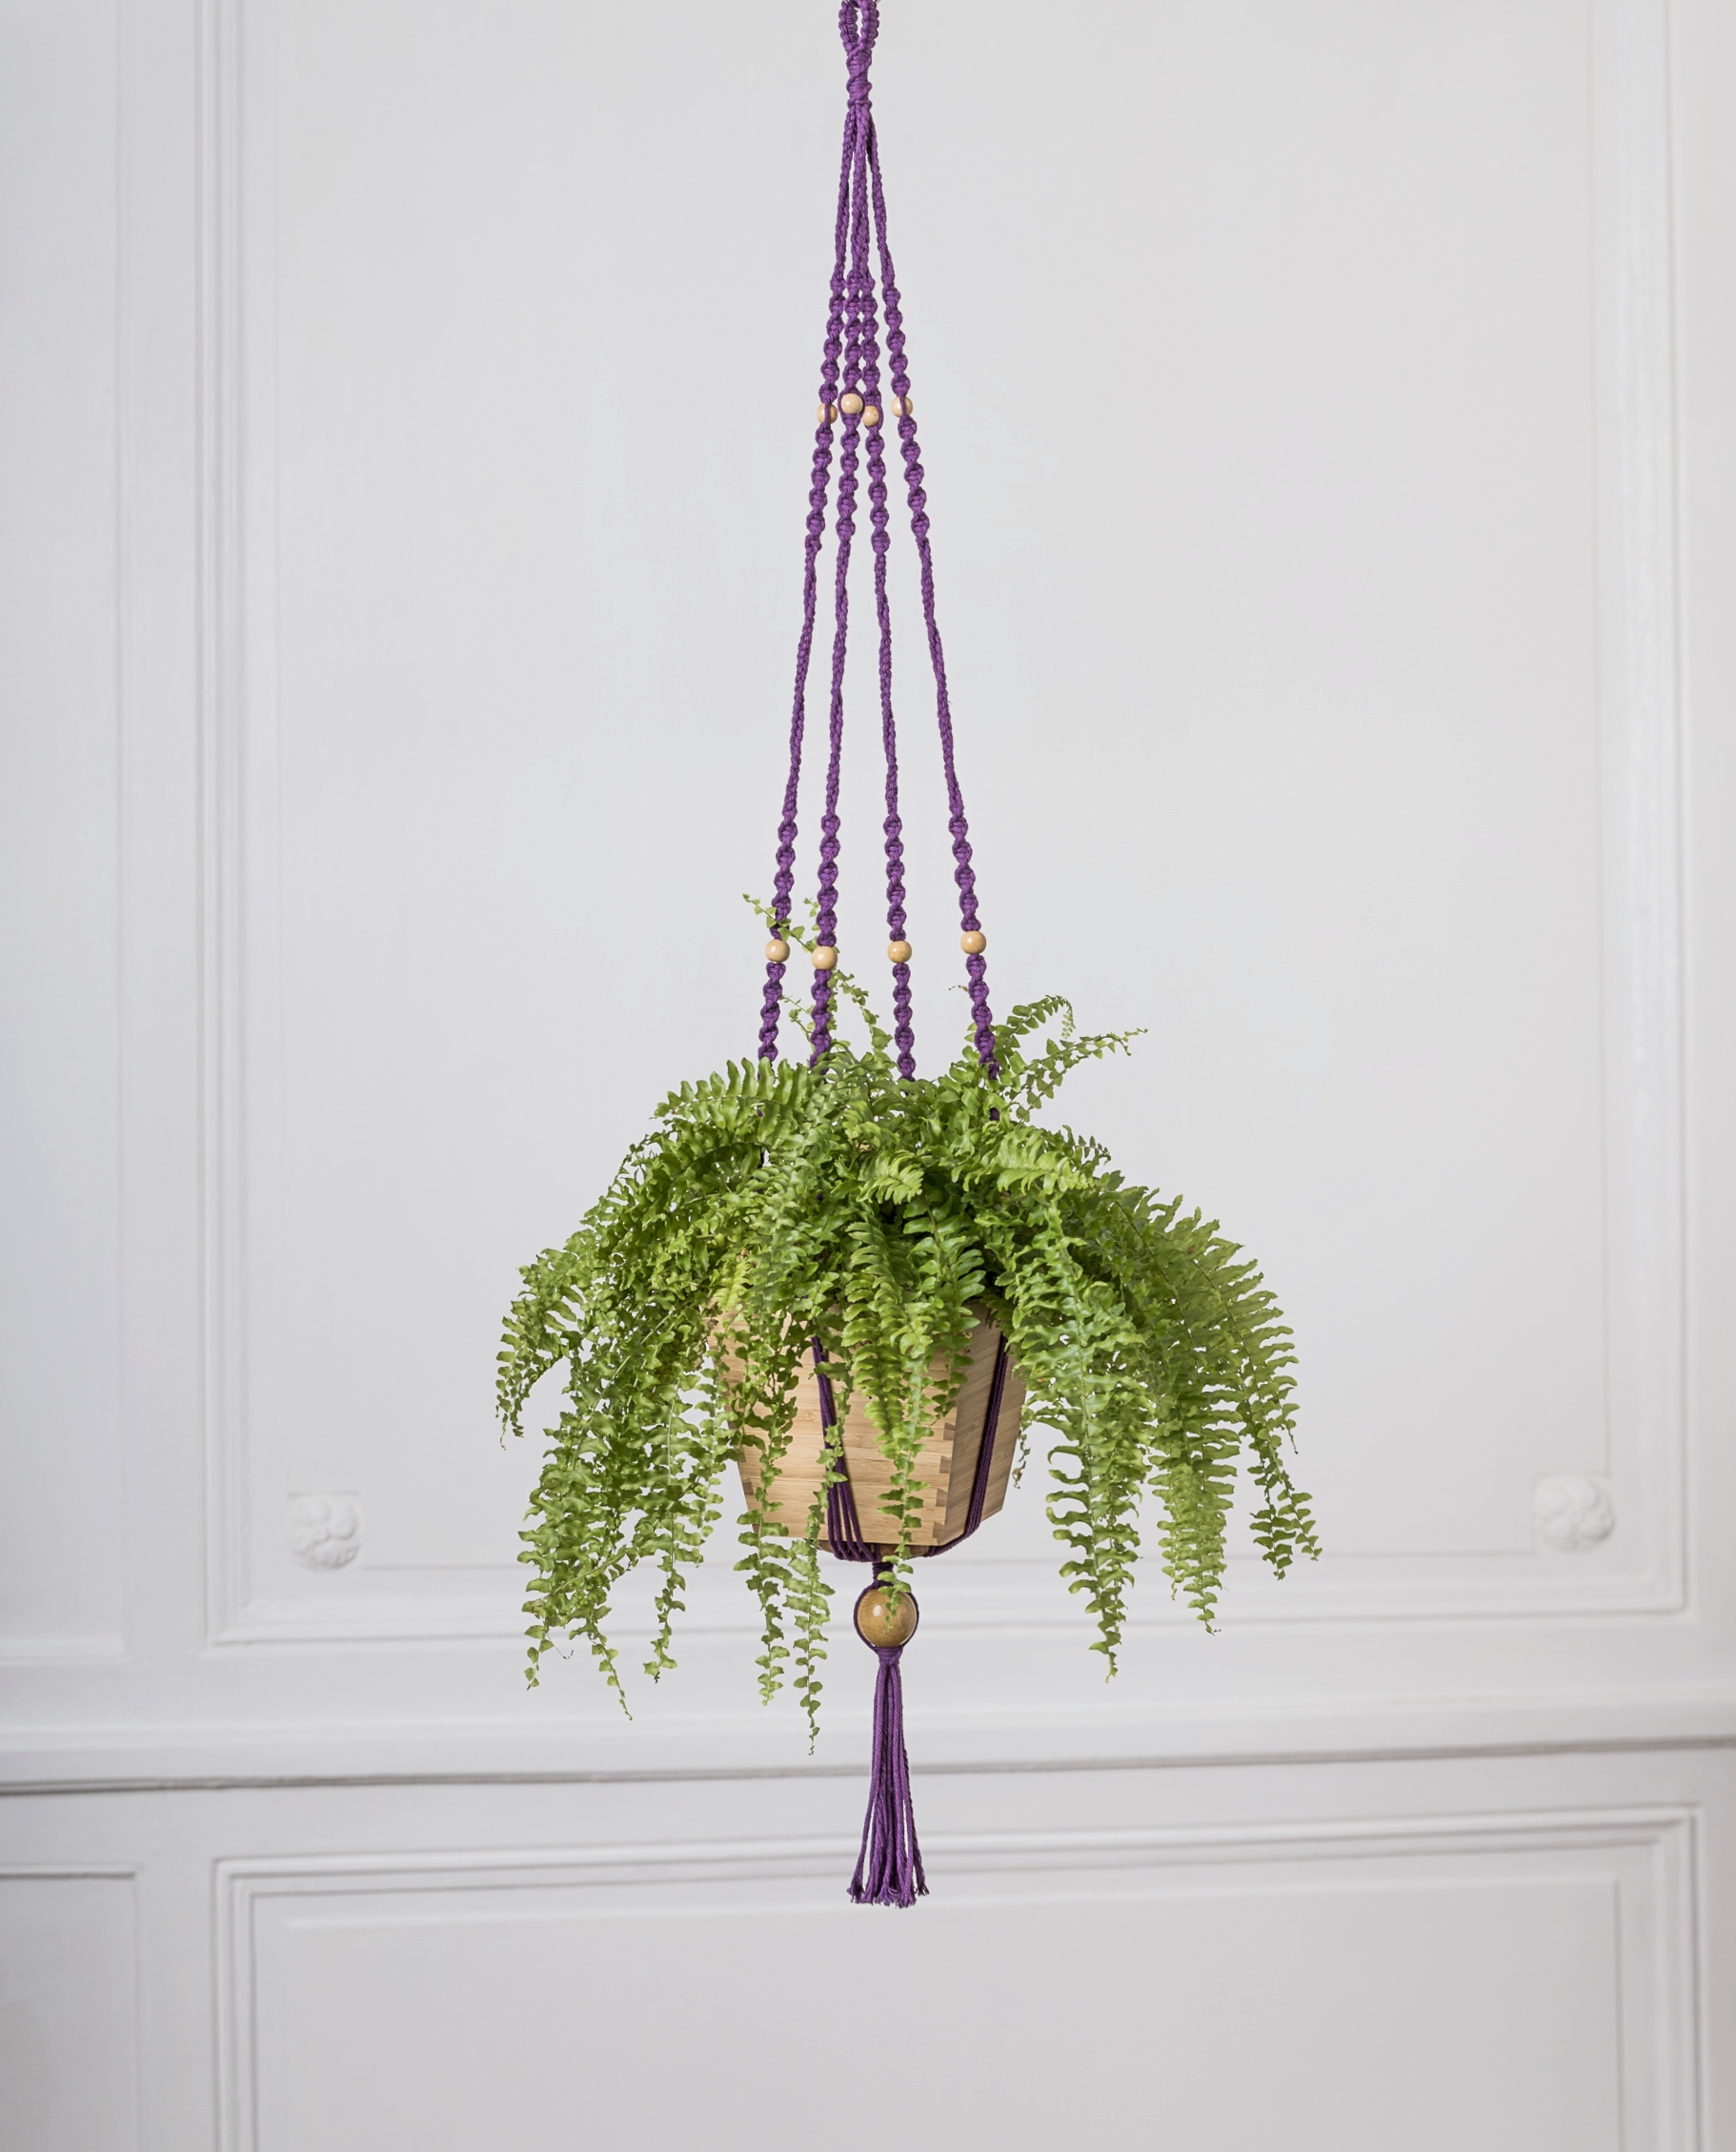 Suspension pour plante en macram bymadjo tynka d co - Suspension pot de fleur macrame ...